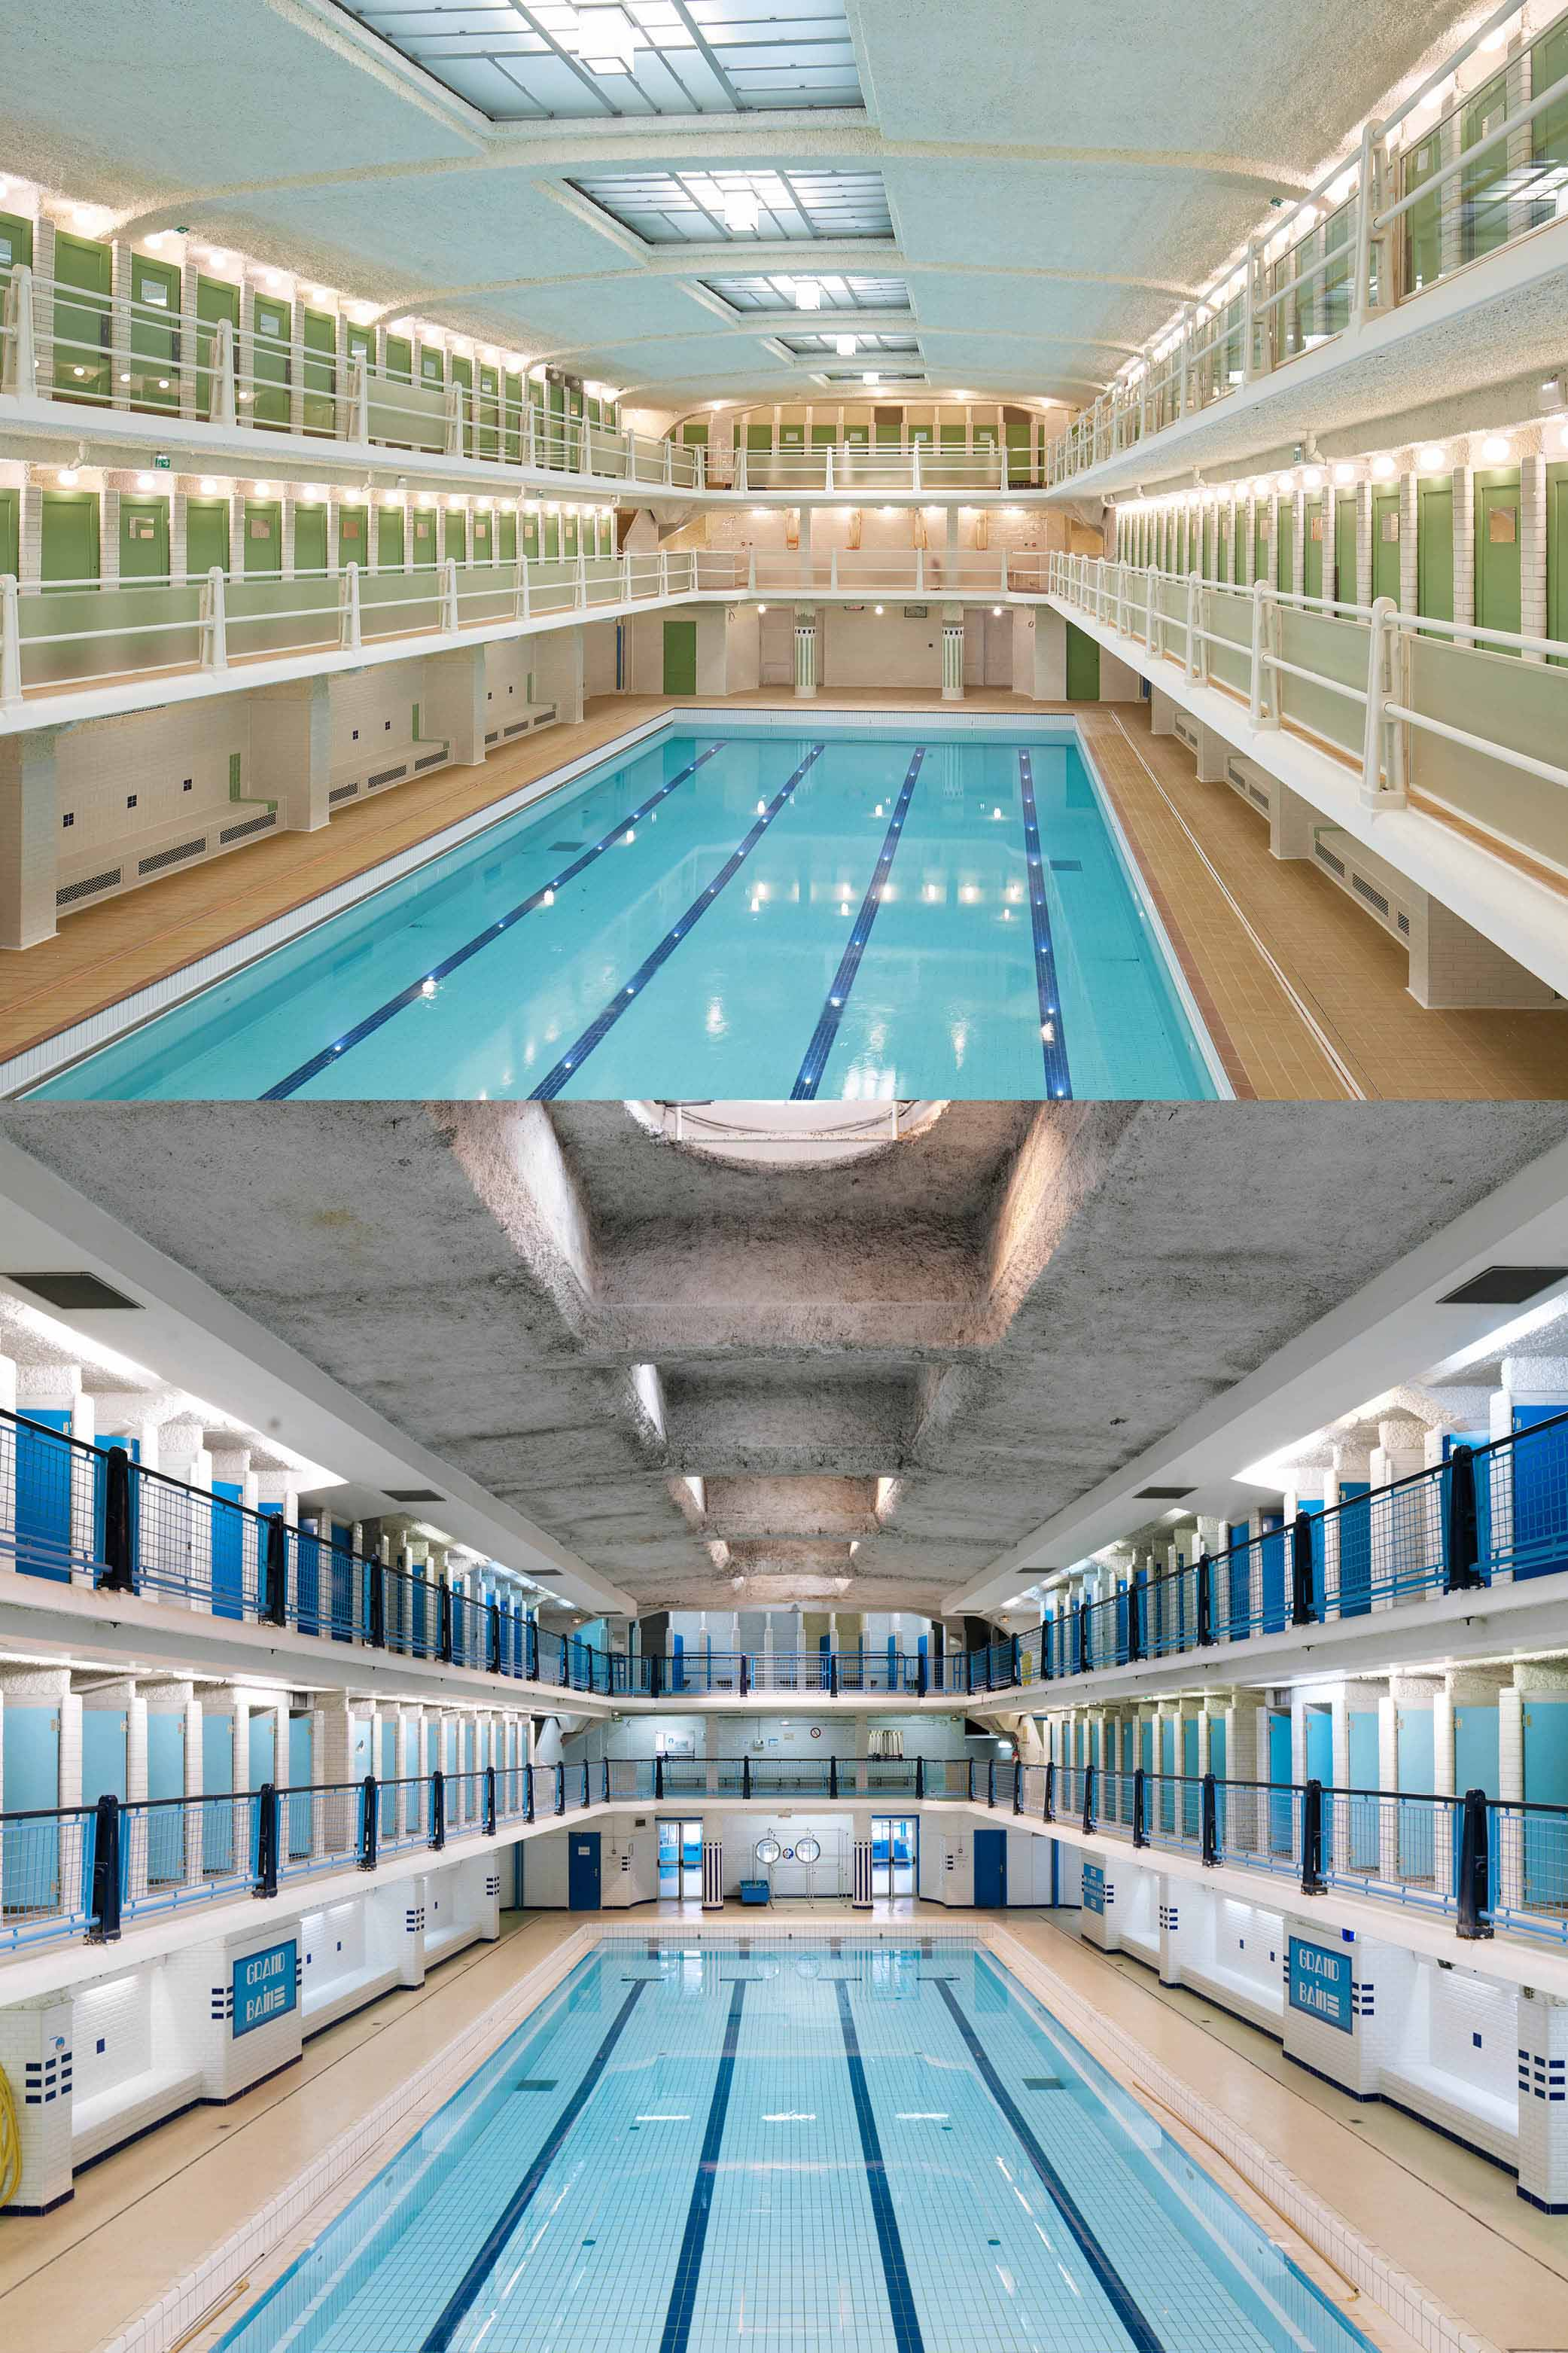 The Amiraux swimming pool before and after the renovation campaign © Antoine Mercusot/Cyrille Weiner}